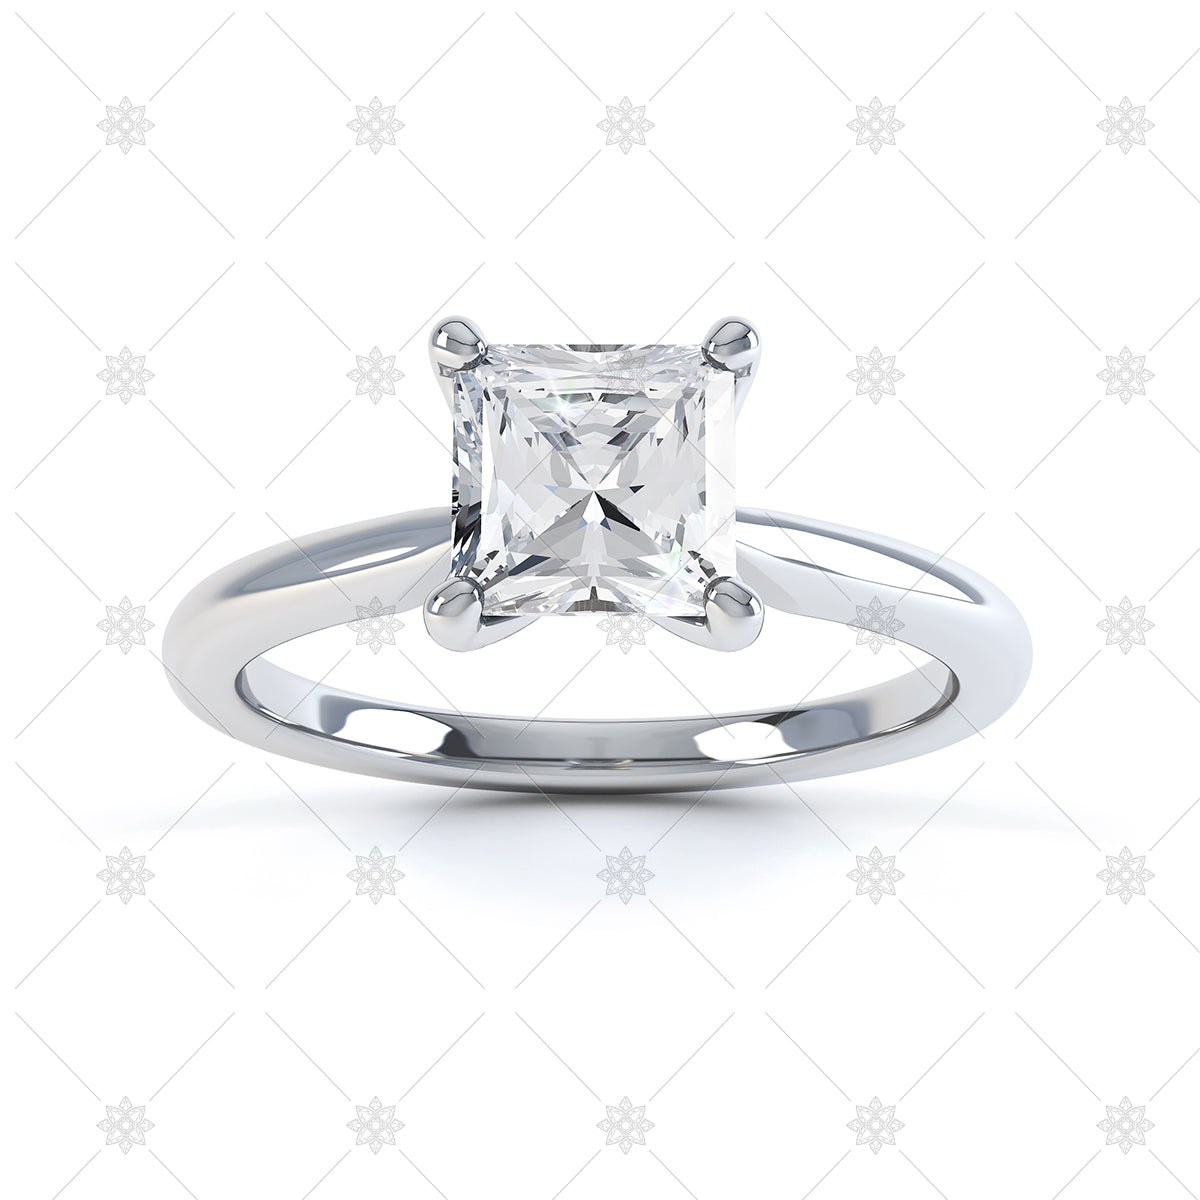 square 4 claw ring image